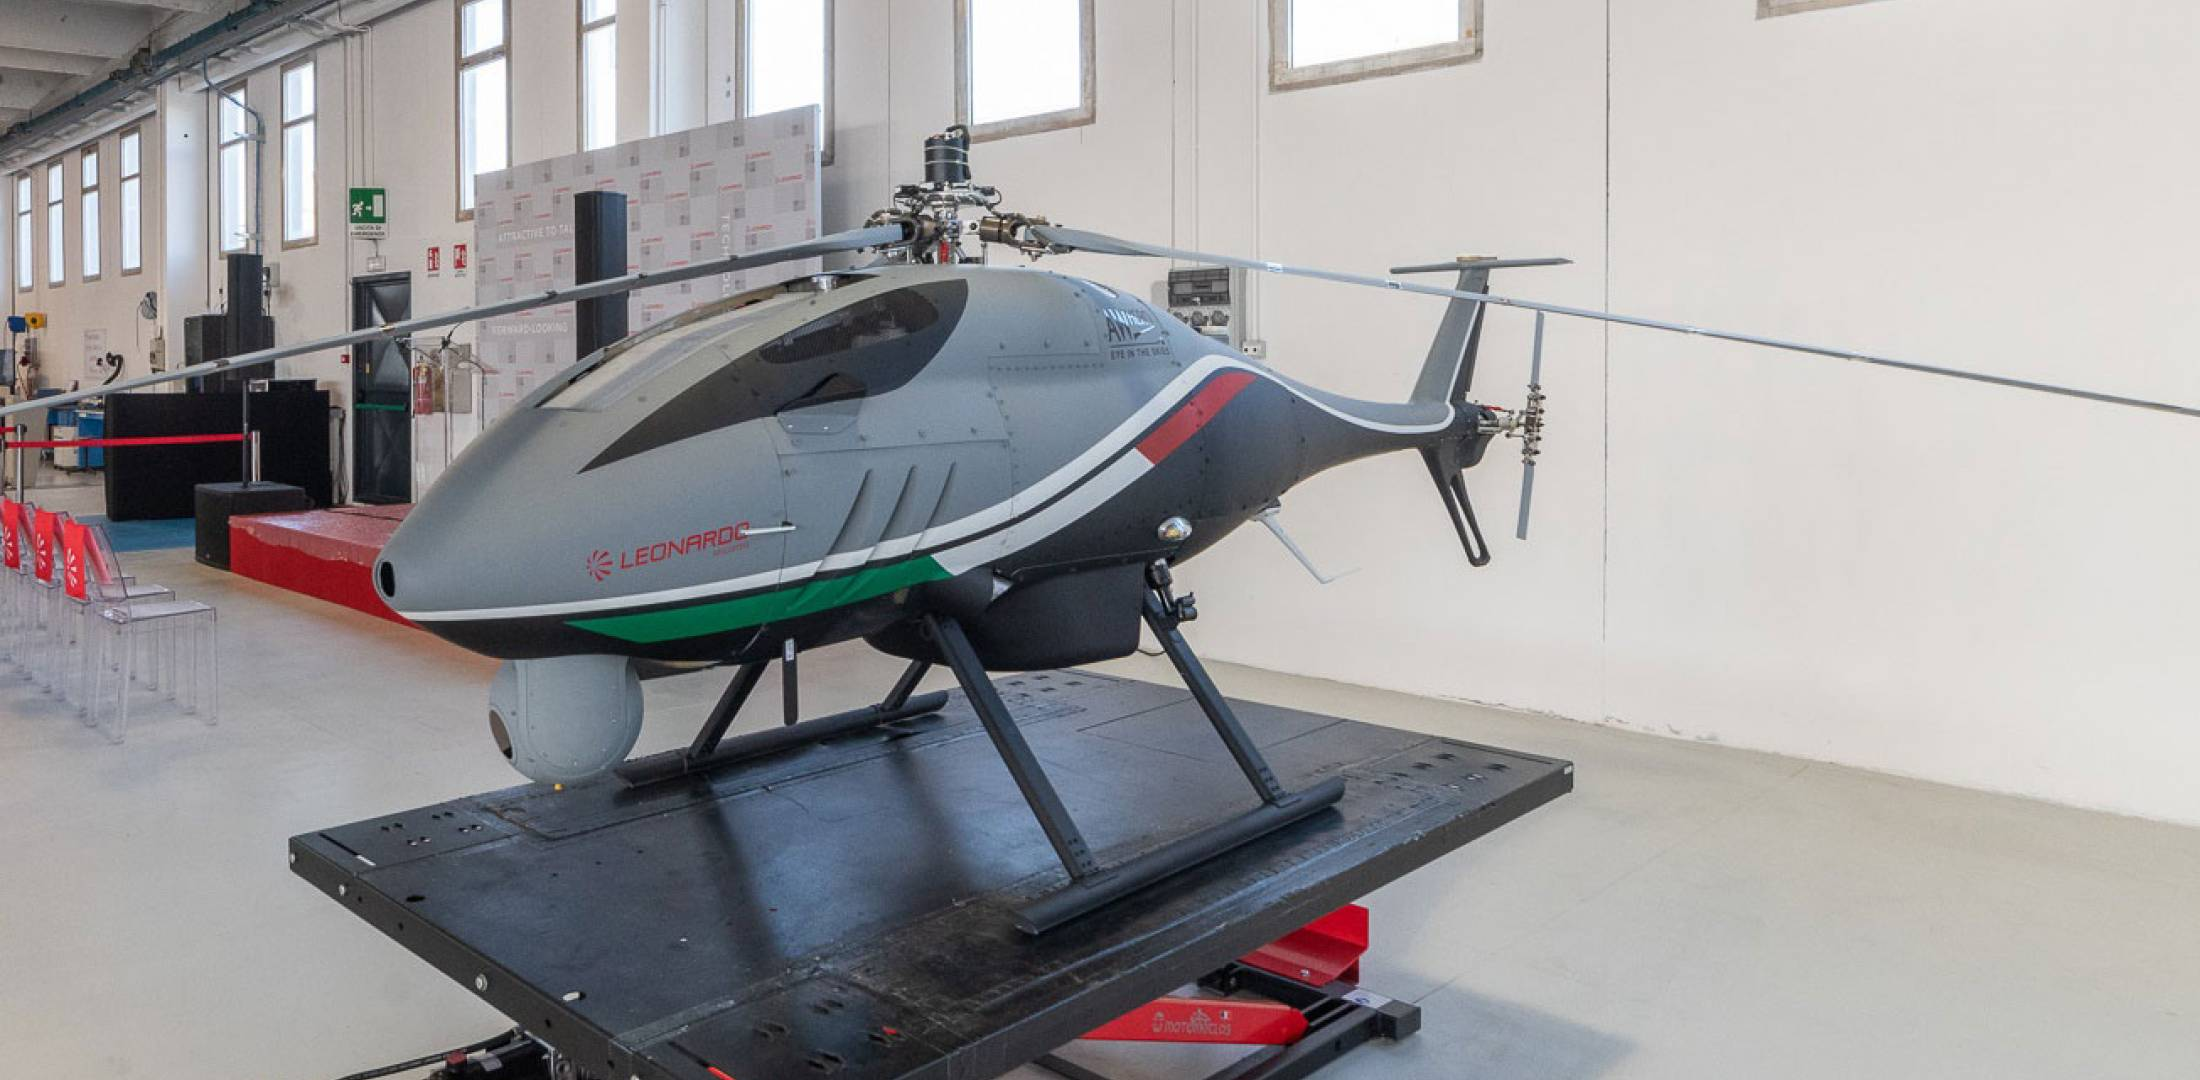 unmanned air system by Leonardo